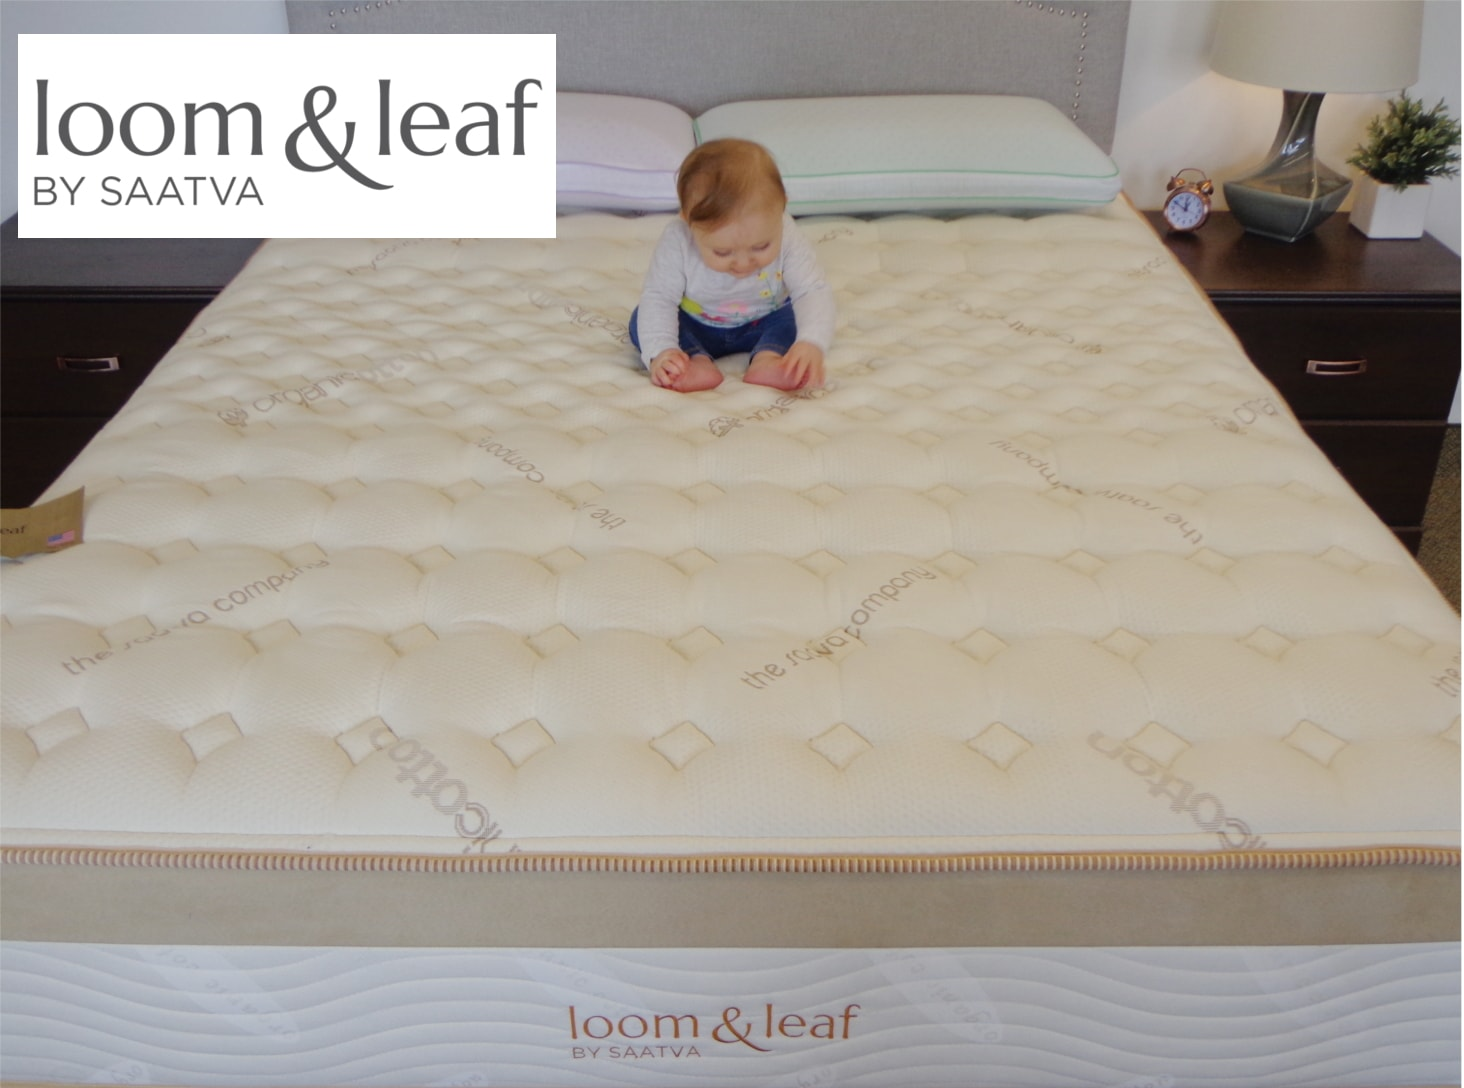 Helix Vs Loom And Leaf Casper Vs Loom Leaf Mattress Comparison Review